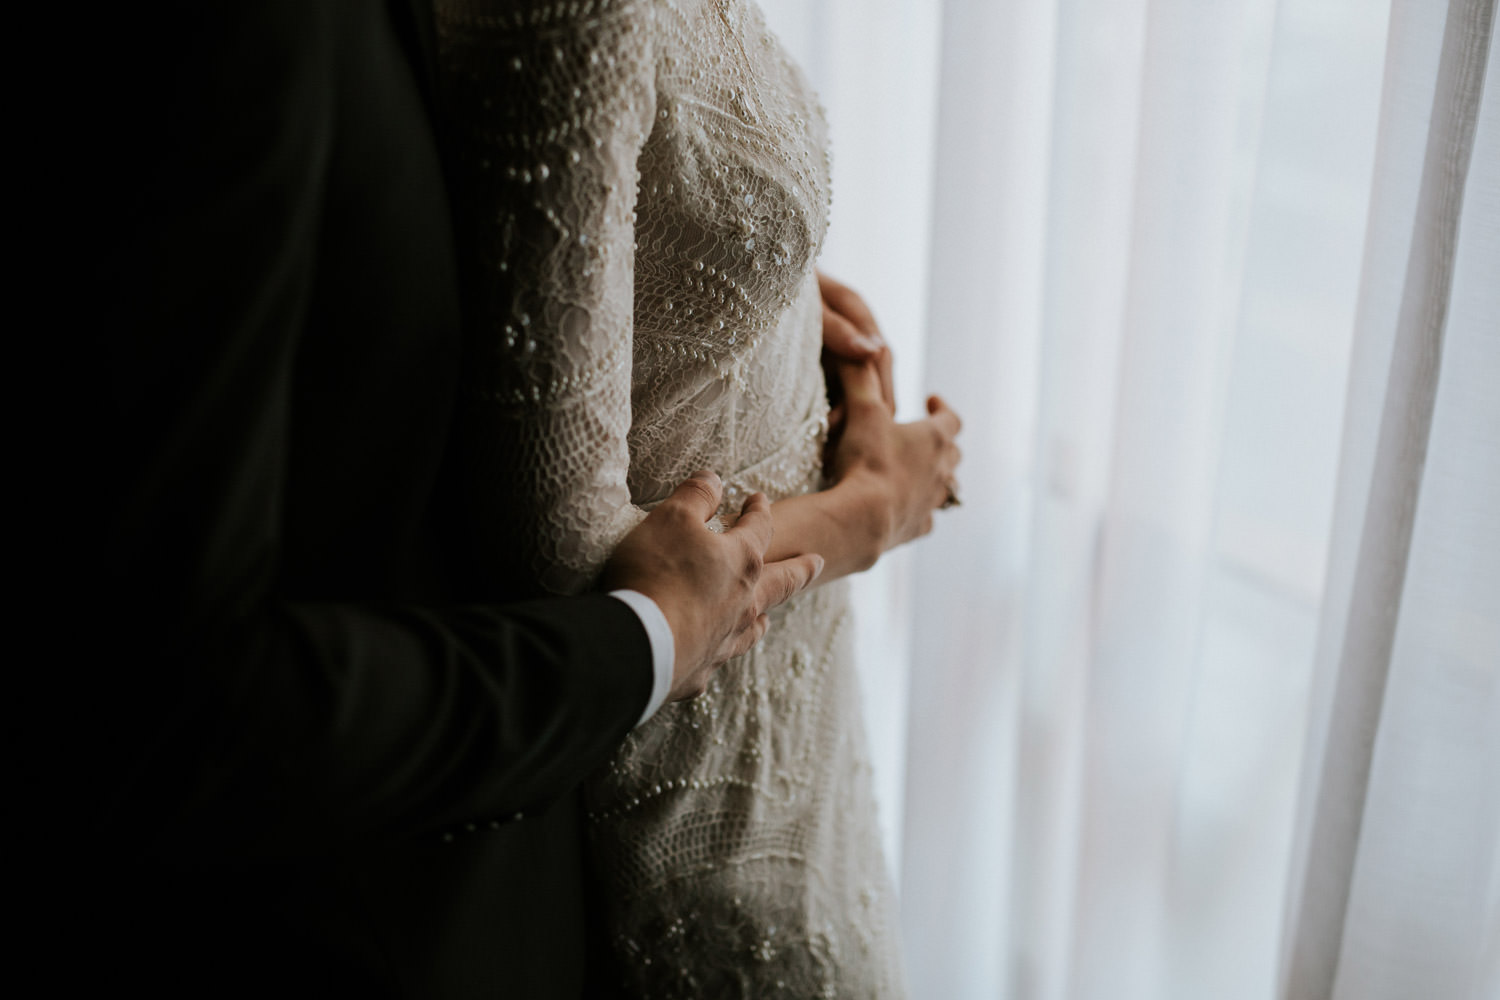 intimate moment of the groom embracing the bride before the wedding ceremony at the gray hotel